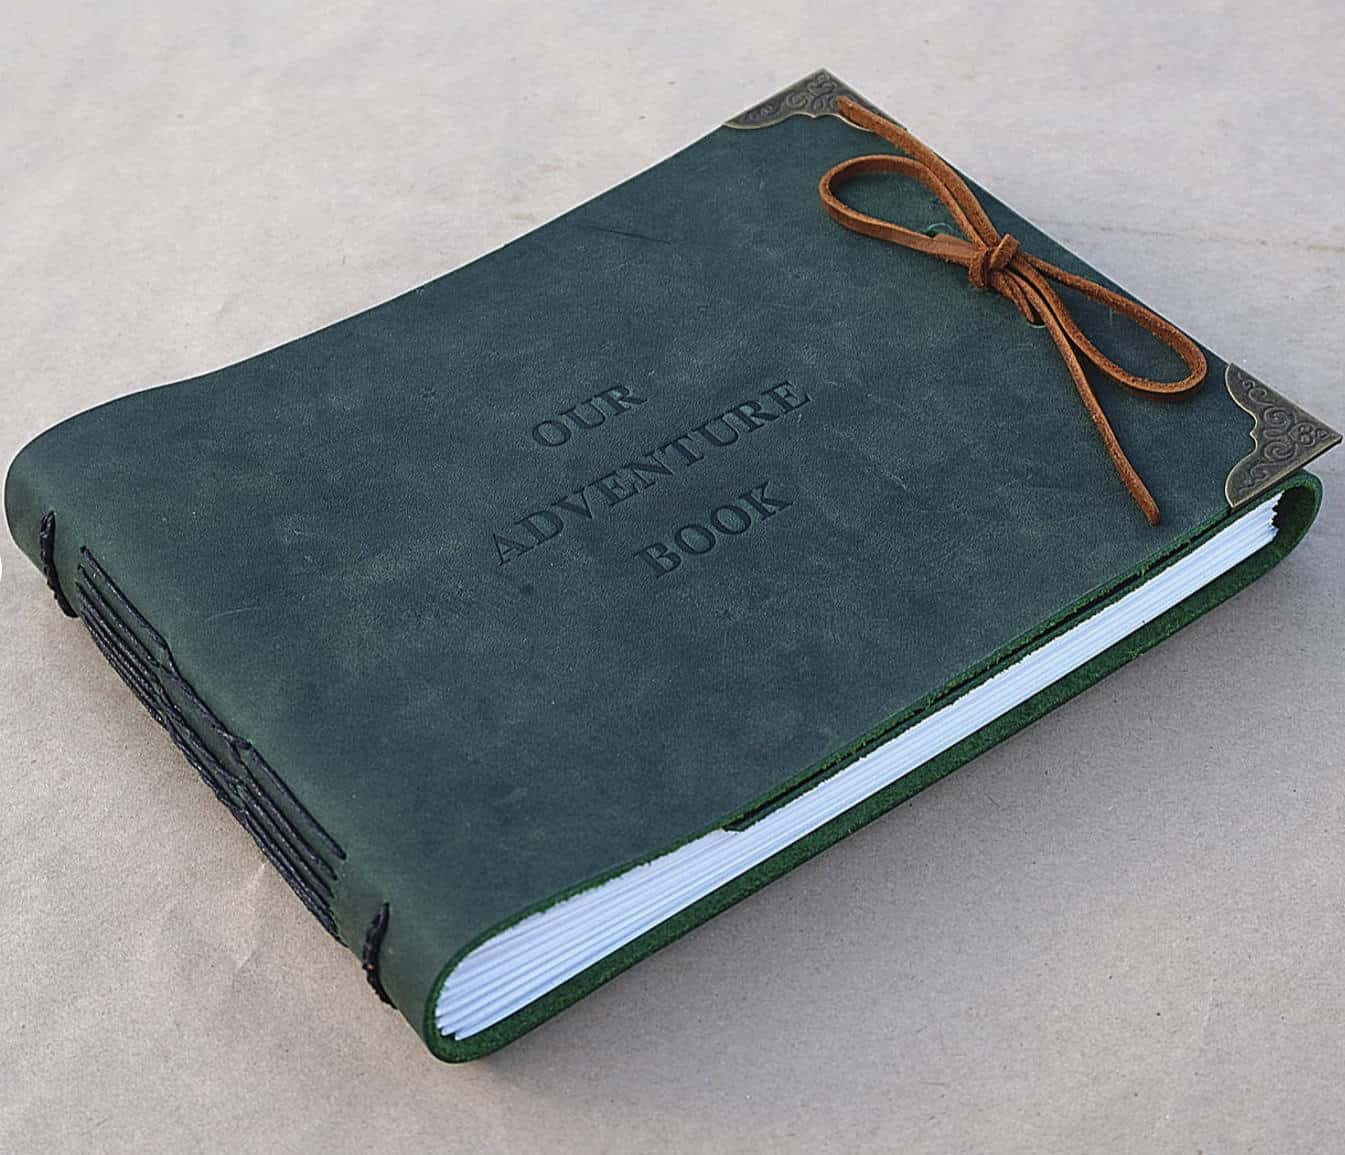 Our adventure book by etsy artist Janneyleather